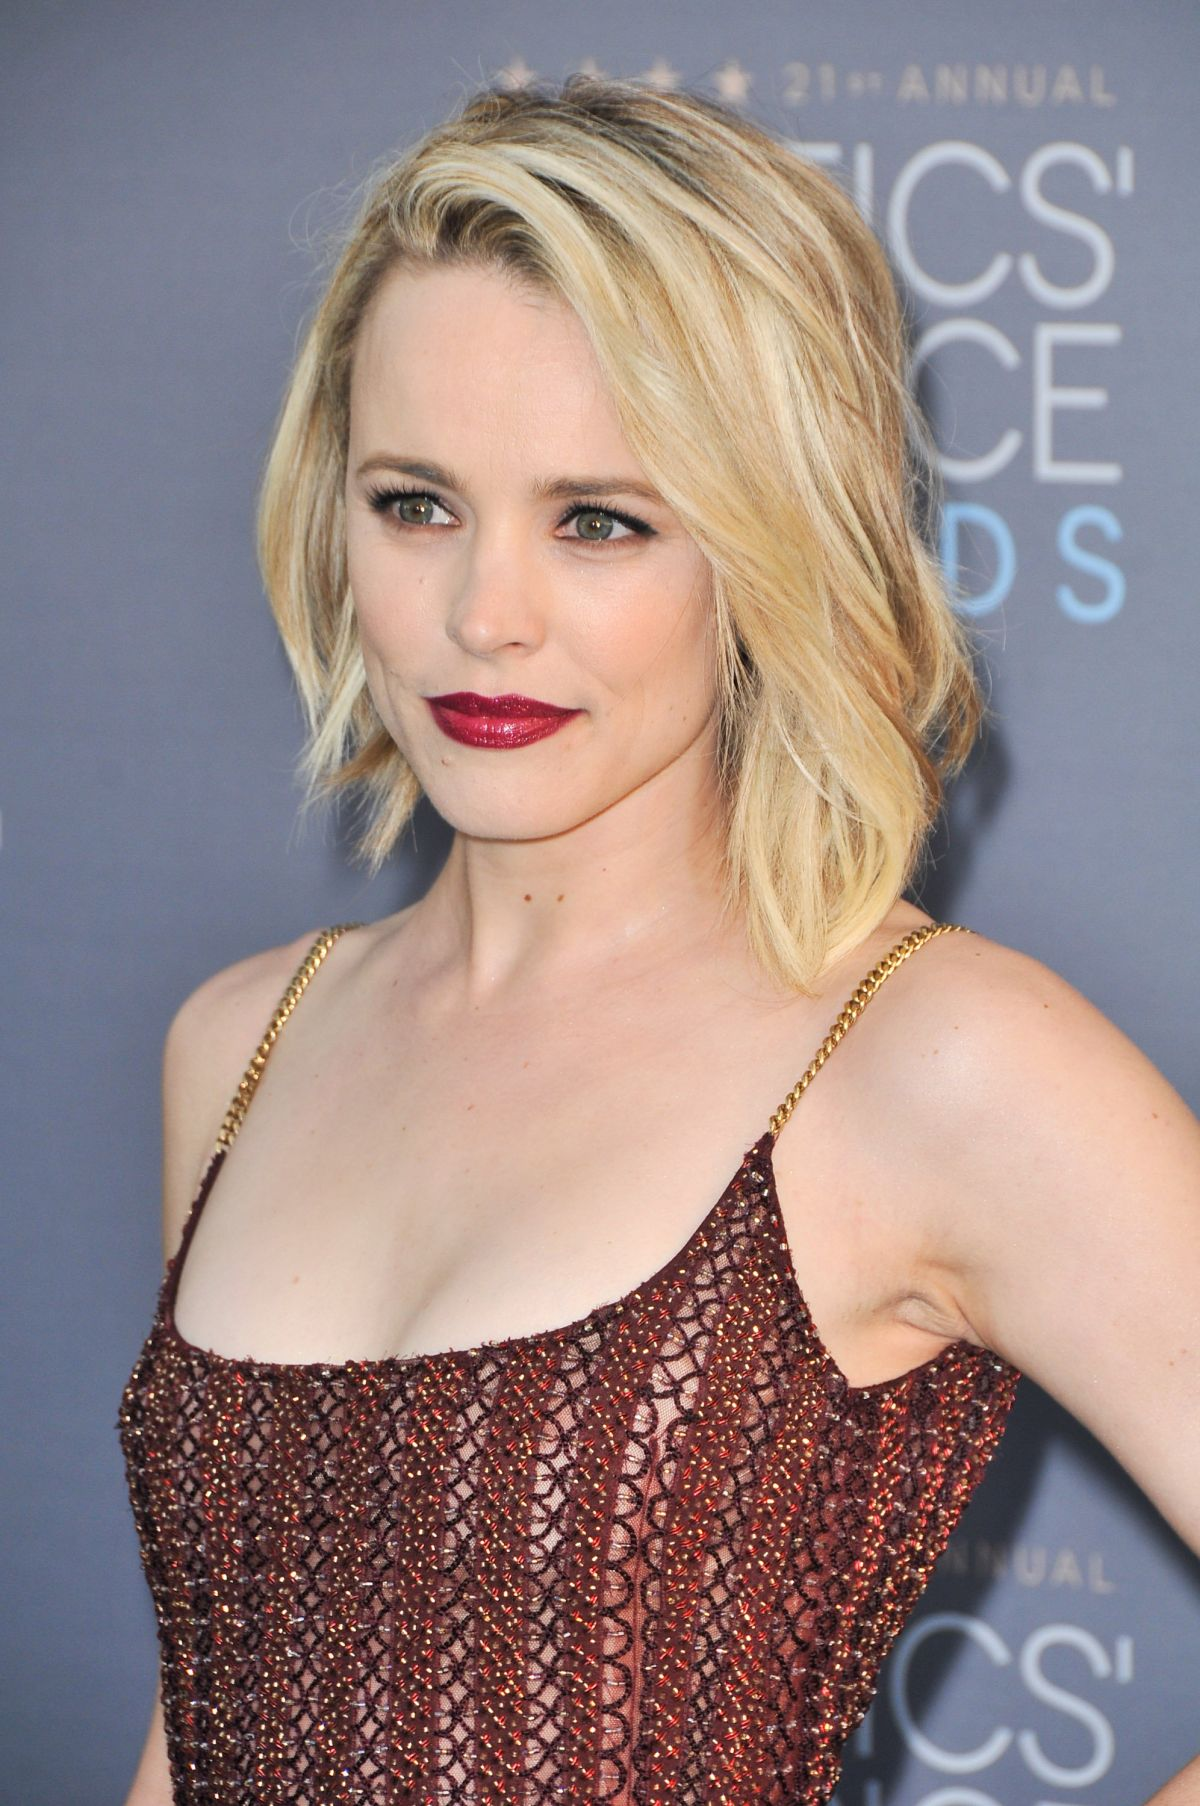 Rachel McAdams nude (83 foto), images Selfie, YouTube, cleavage 2017